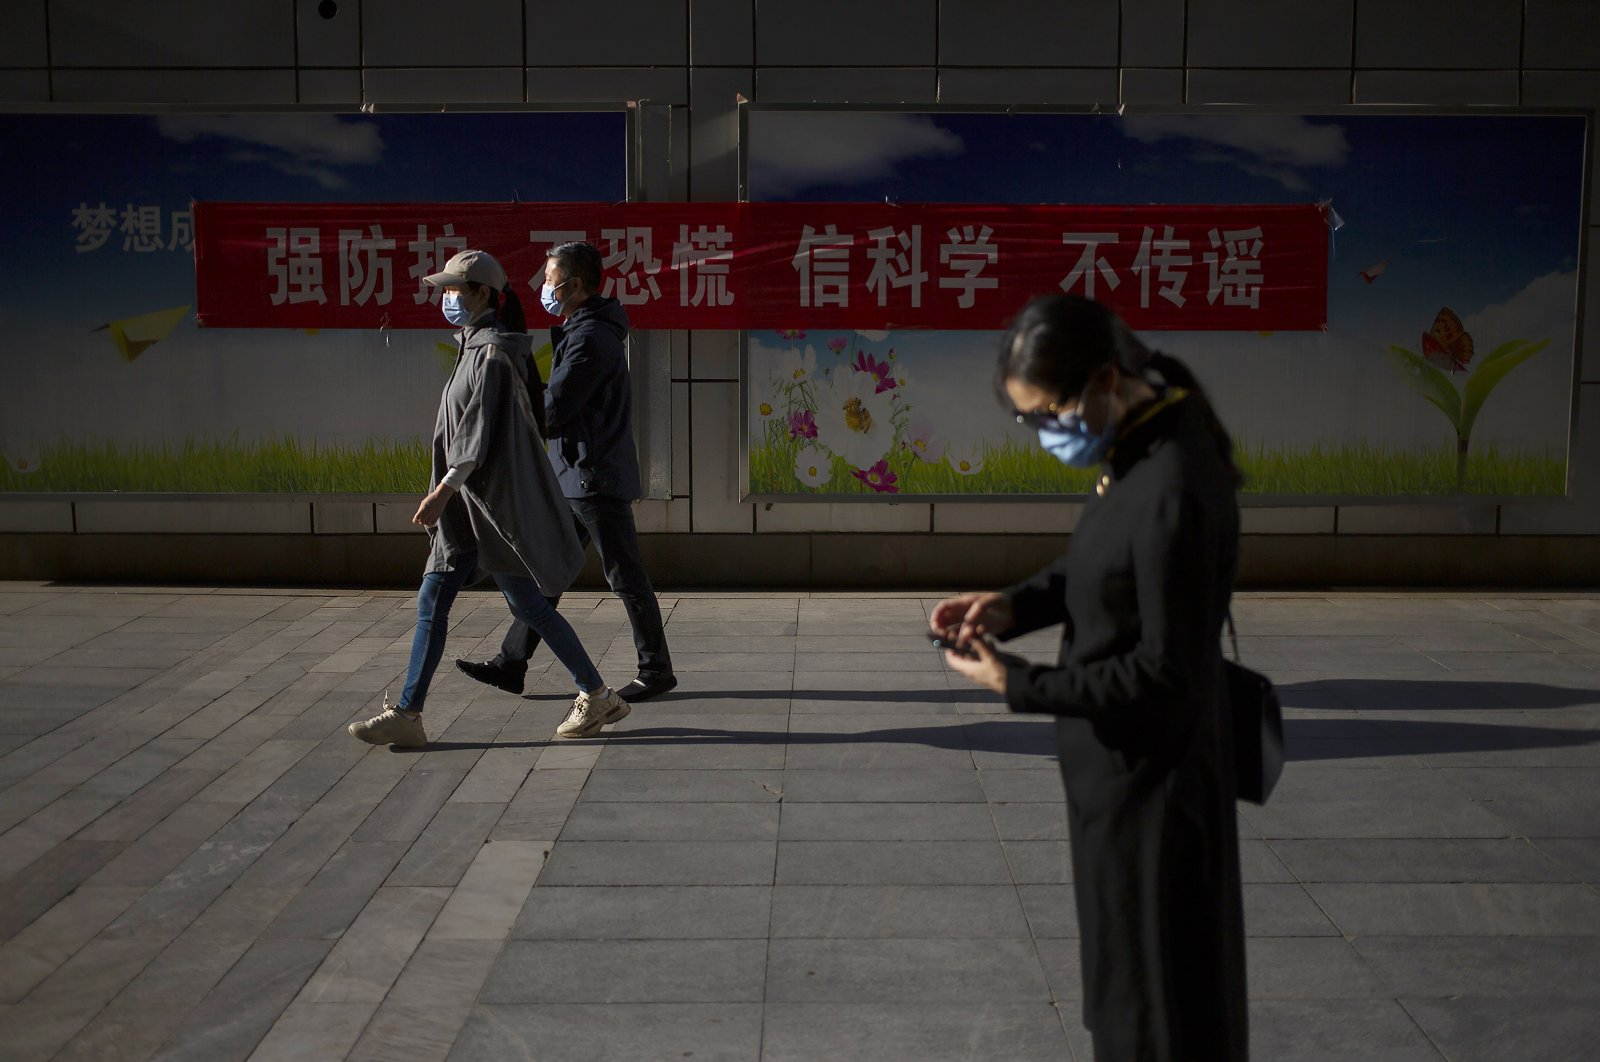 People wear face masks to protect against the spread of the new coronavirus as they walk along a street, Beijing, China, April 23, 2020. (AP Photo)